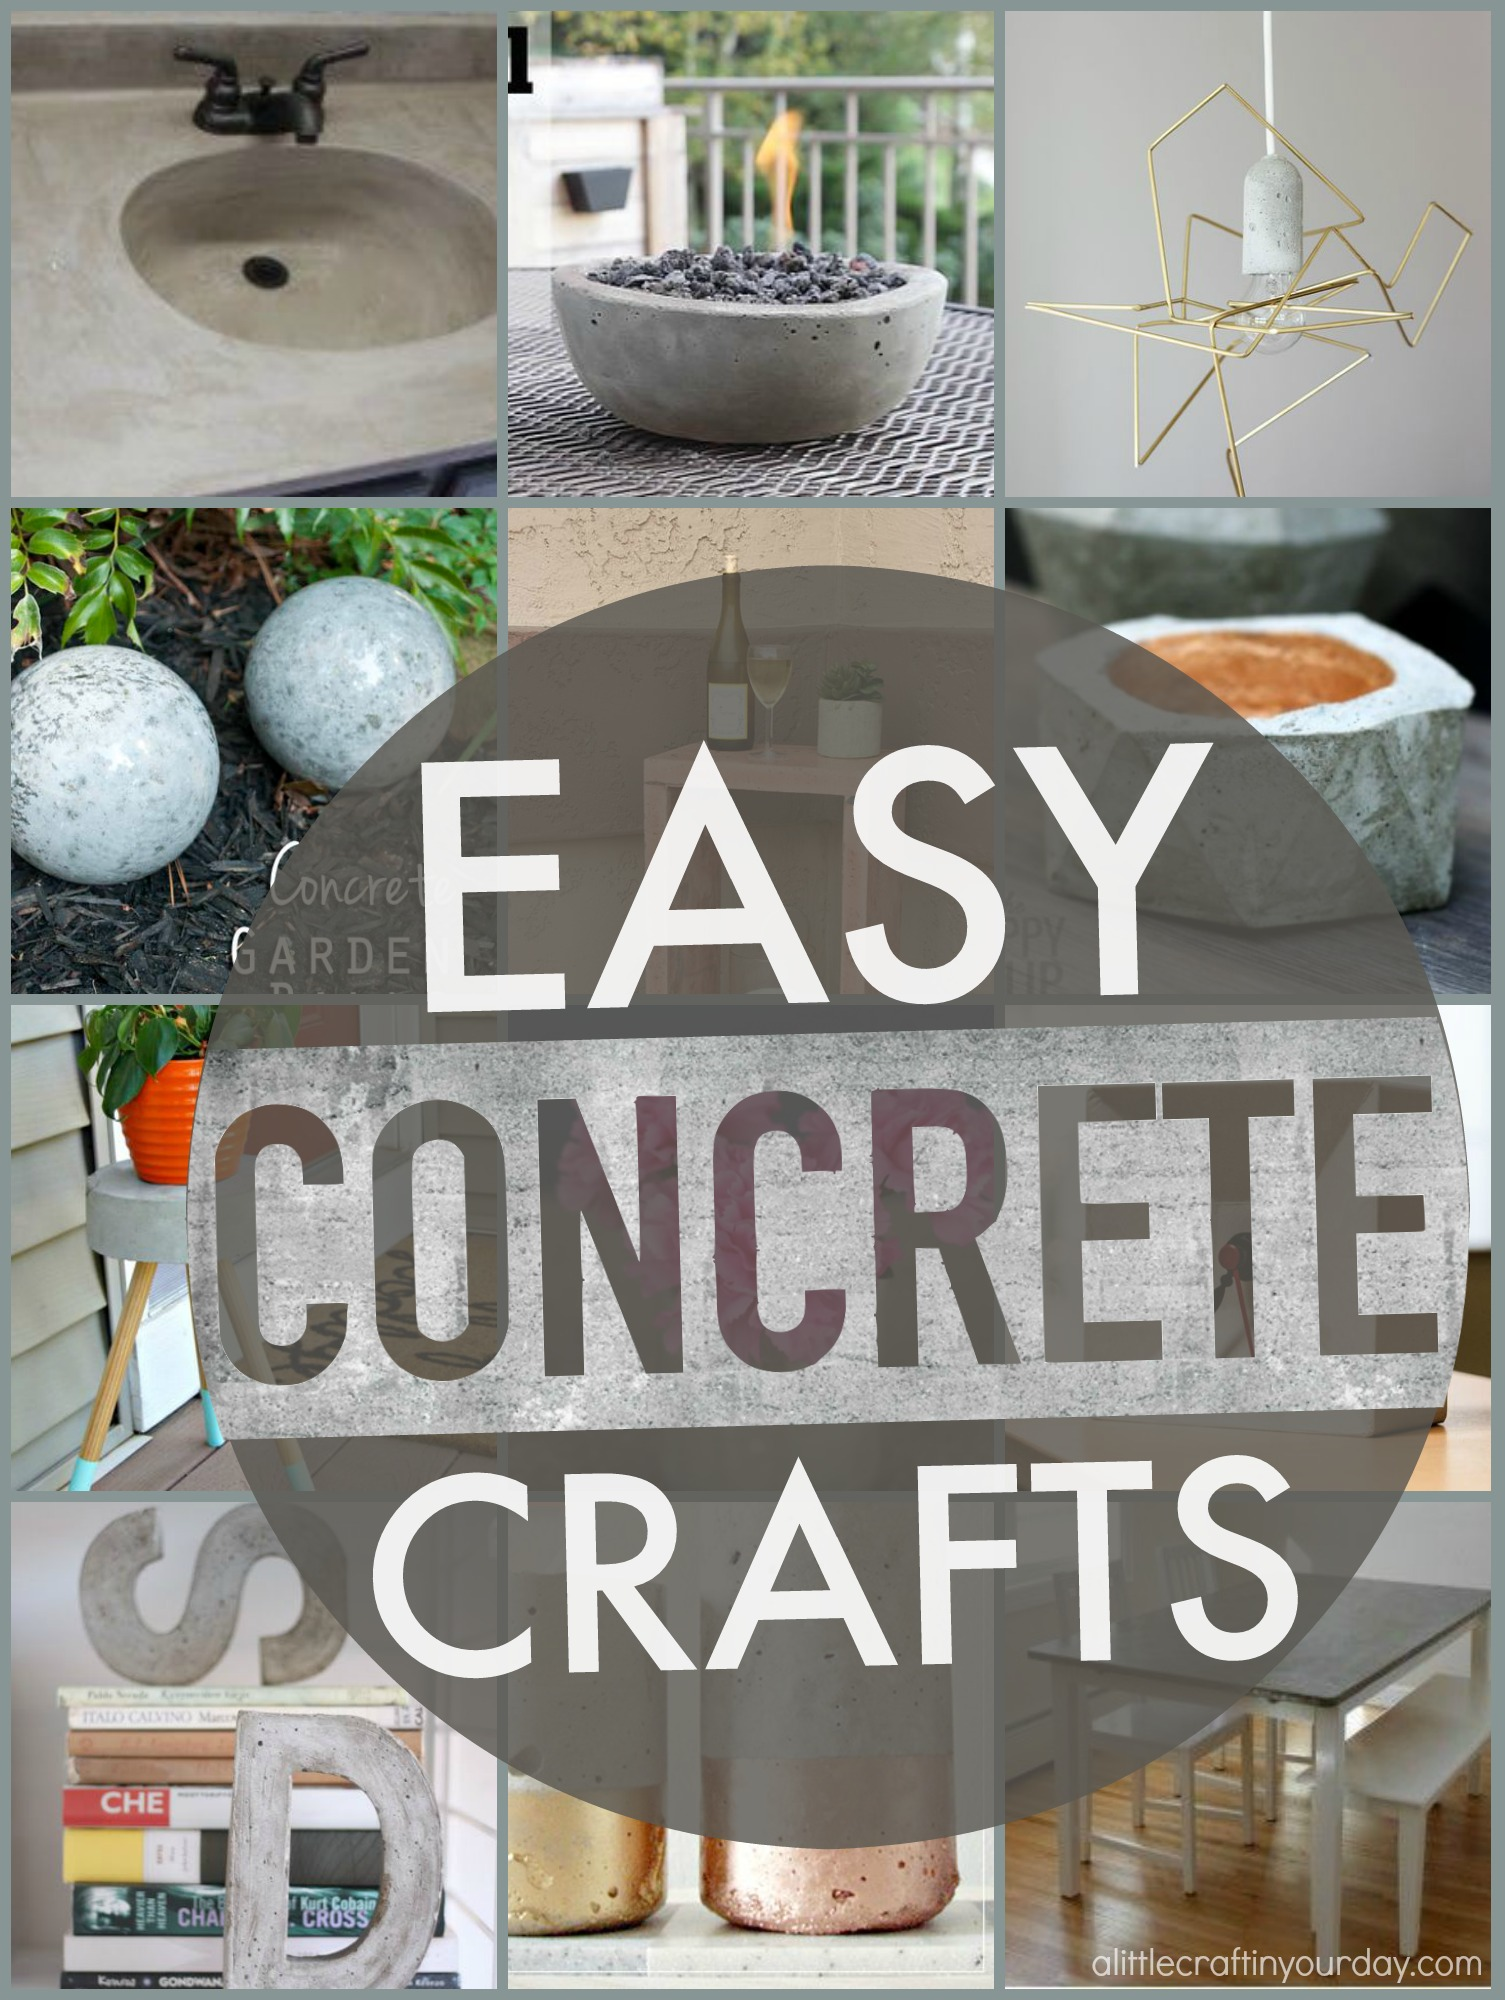 9/30 | Easy Concrete Projects